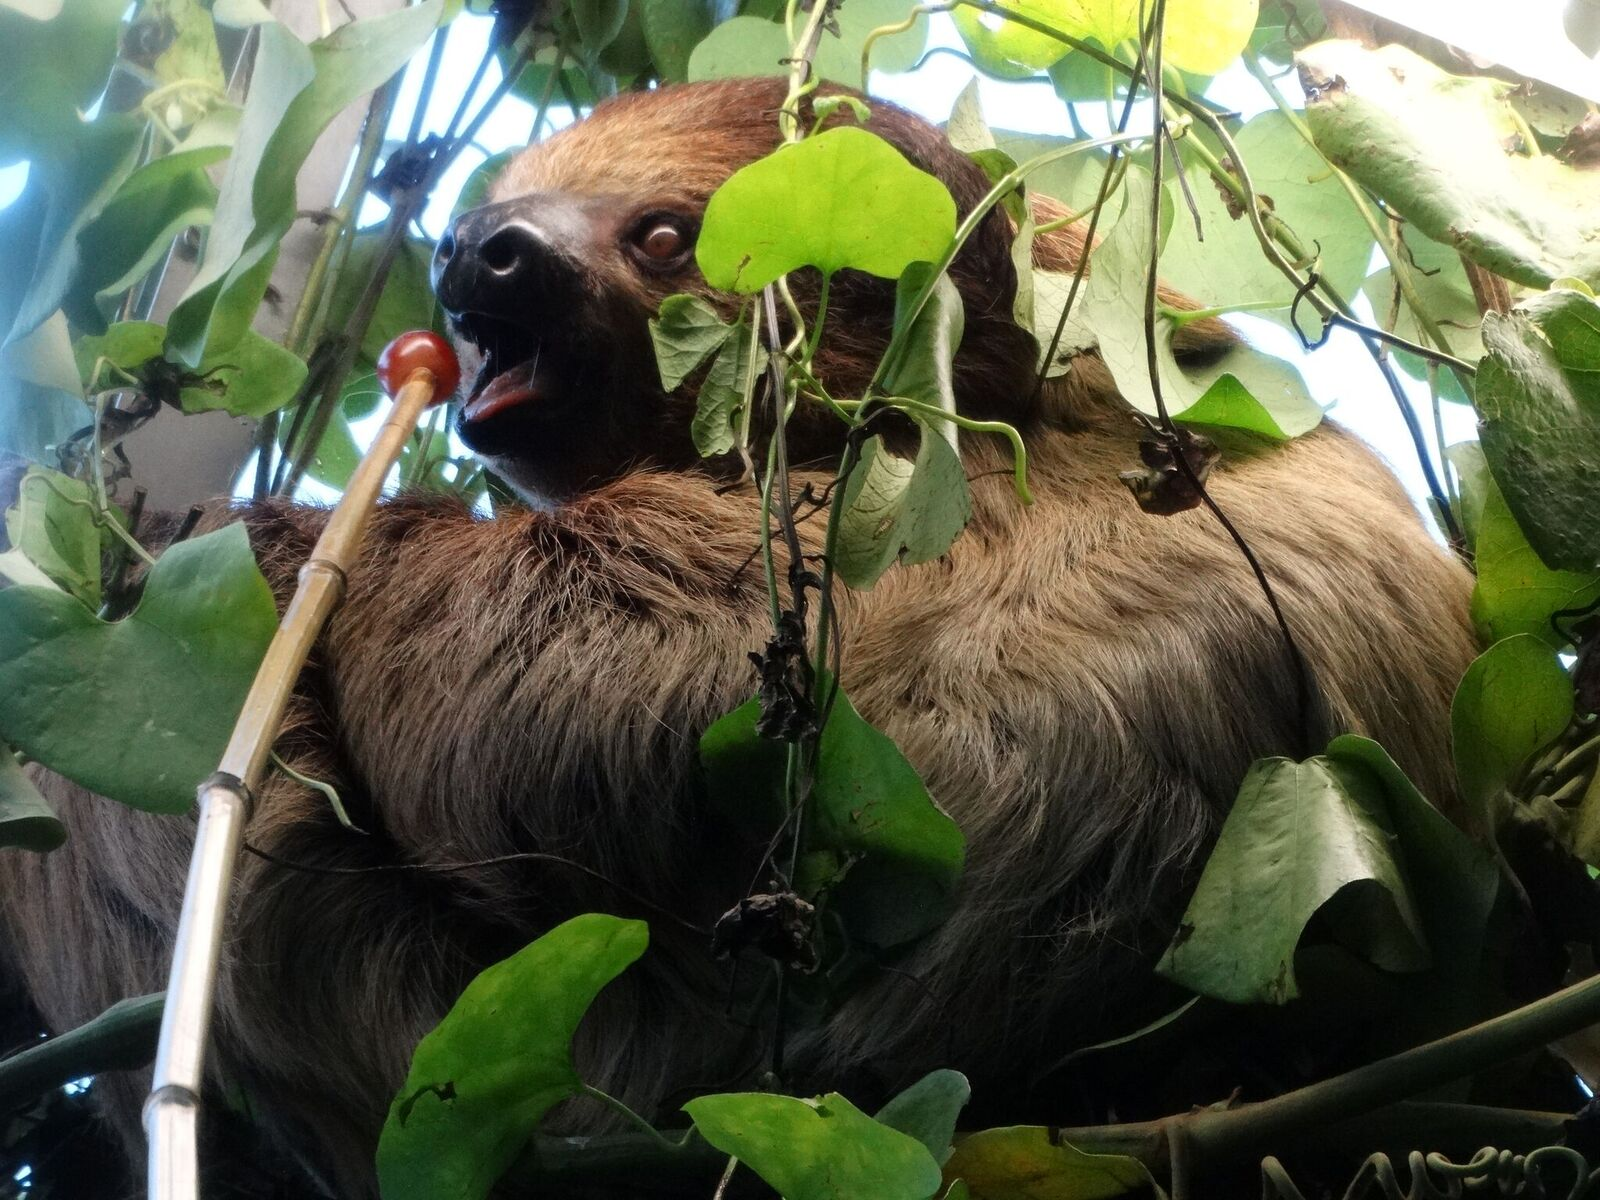 A sloth comes out of hiding to eat a grape attached to a bamboo stick.